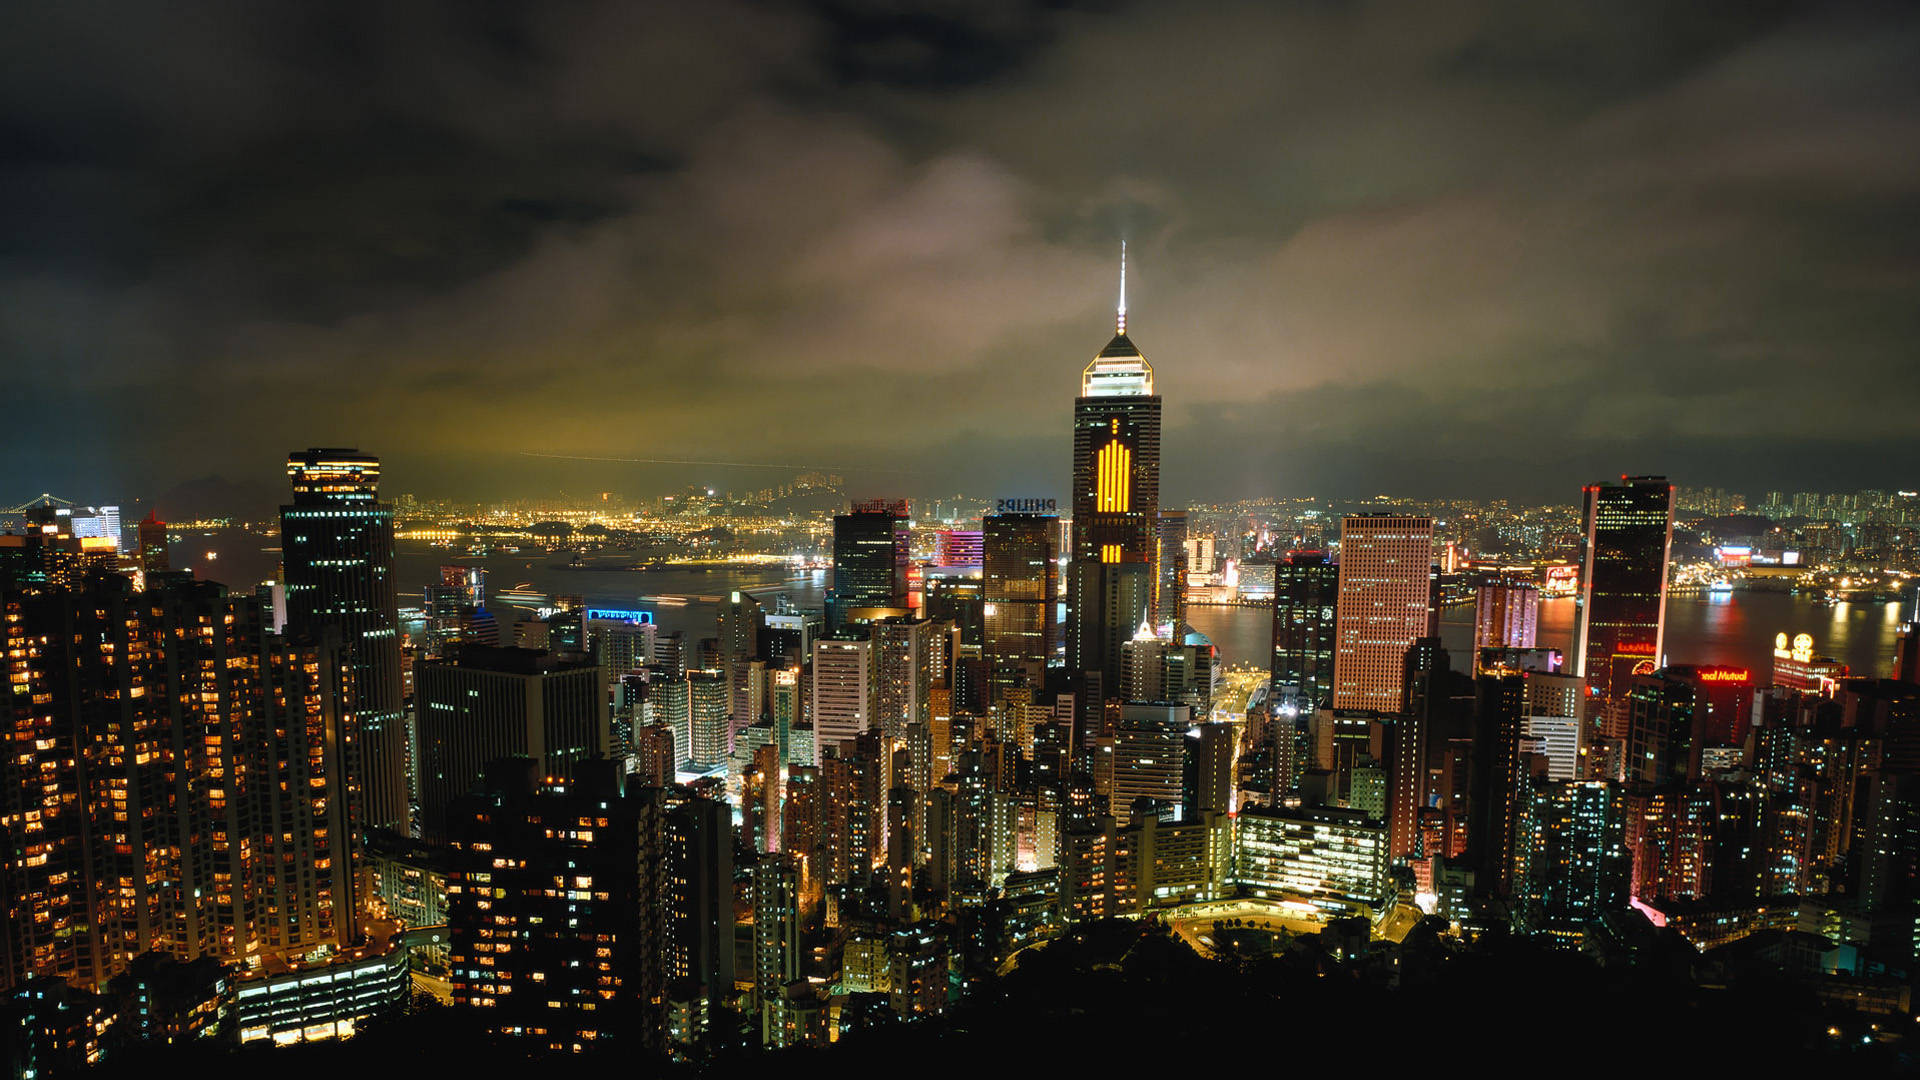 cityscape wallpaper night wallpapers images 1920x1080 1920x1080